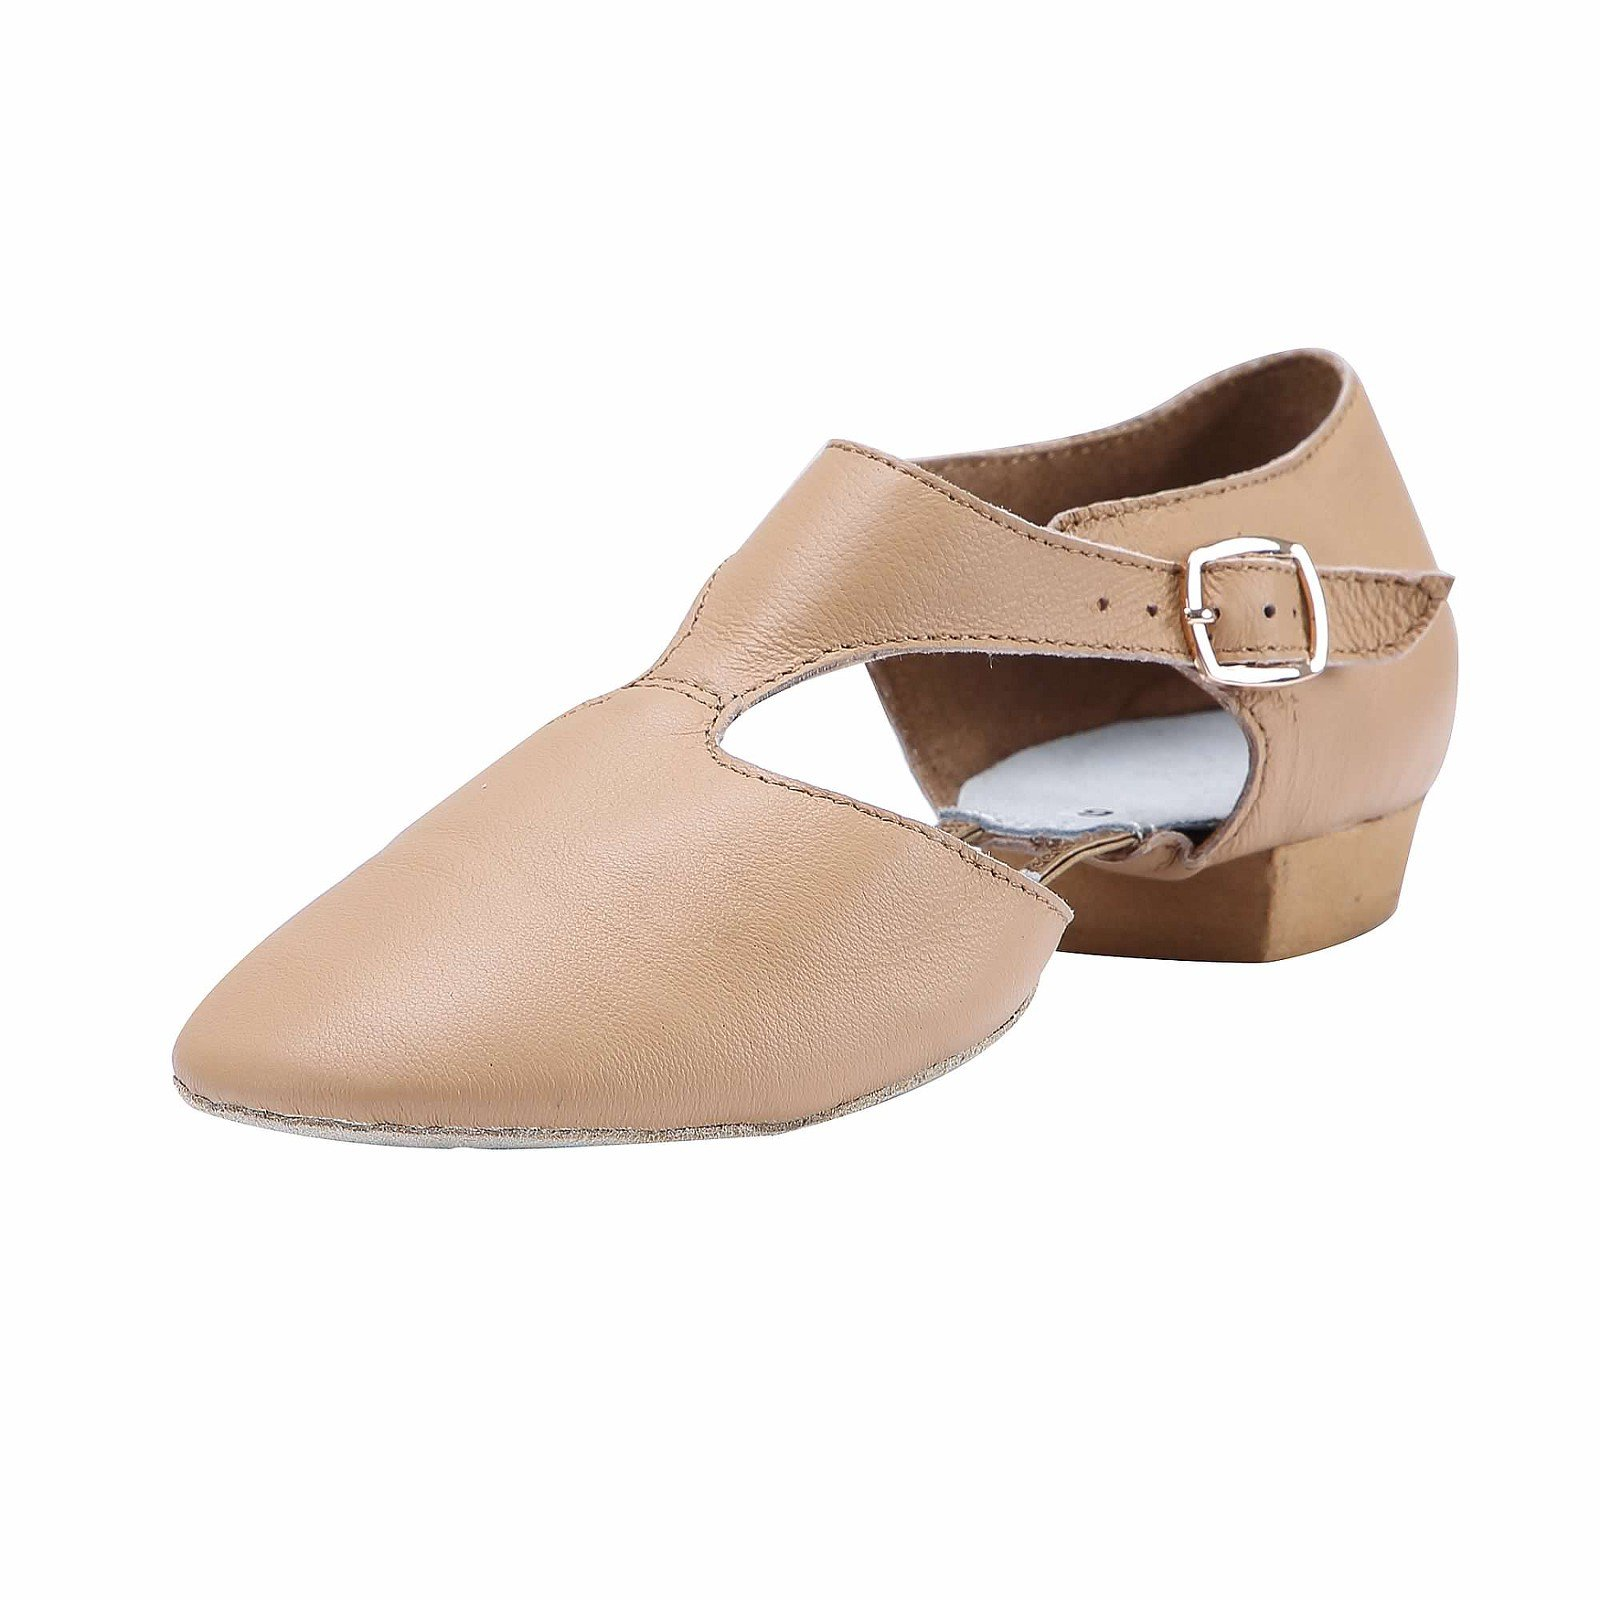 Linodes Women's T-Strap Leather Upper Jazz Shoe Split Sole with Elastics to Connect Brown 7M